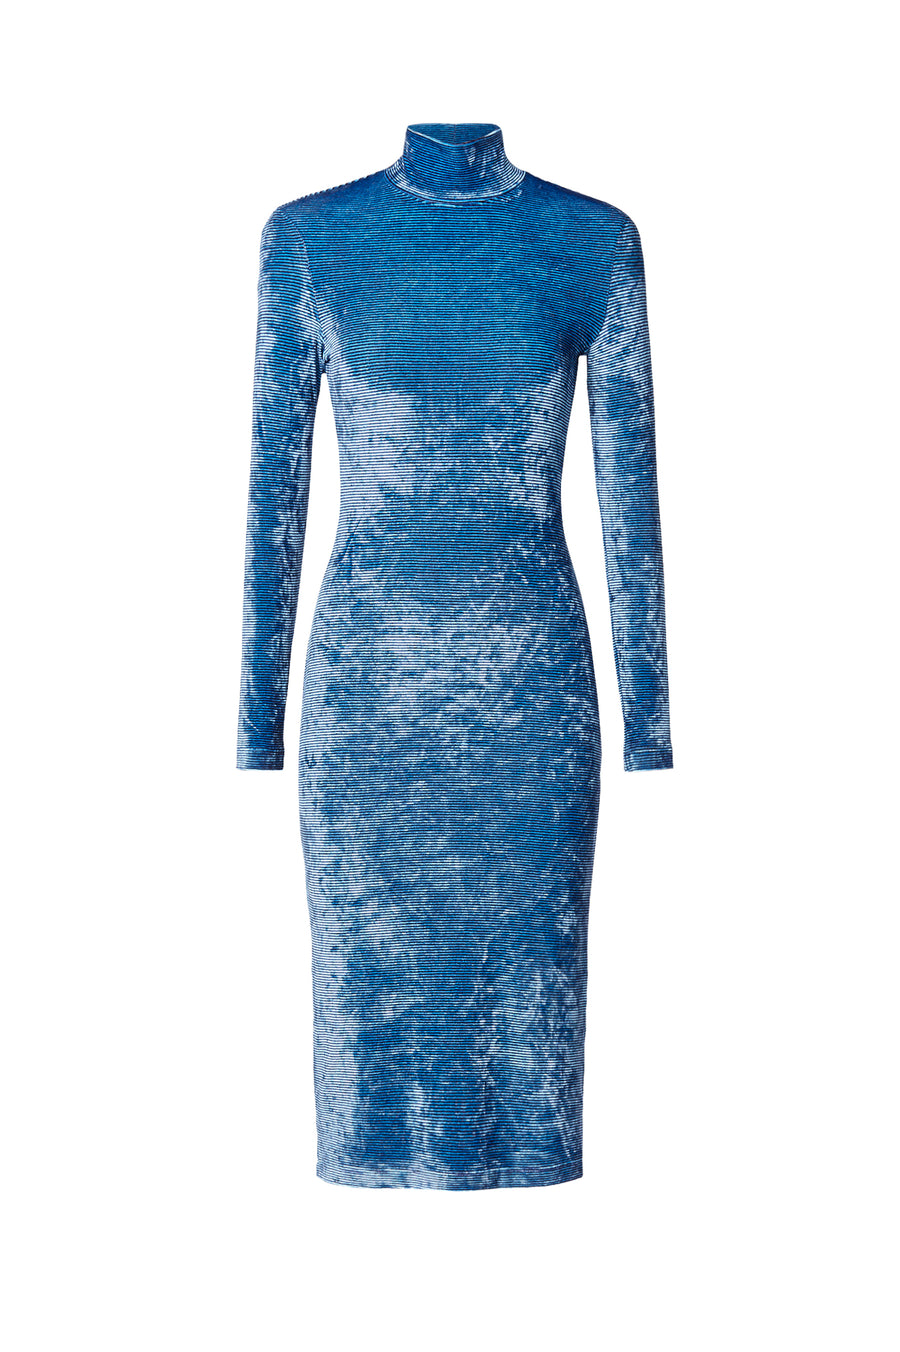 Stripe Velour Dress is a fitted stretch dress that falls just below the knee. It features a high neckline, long sleeves, shoulder pads to define the waist, Color Blue